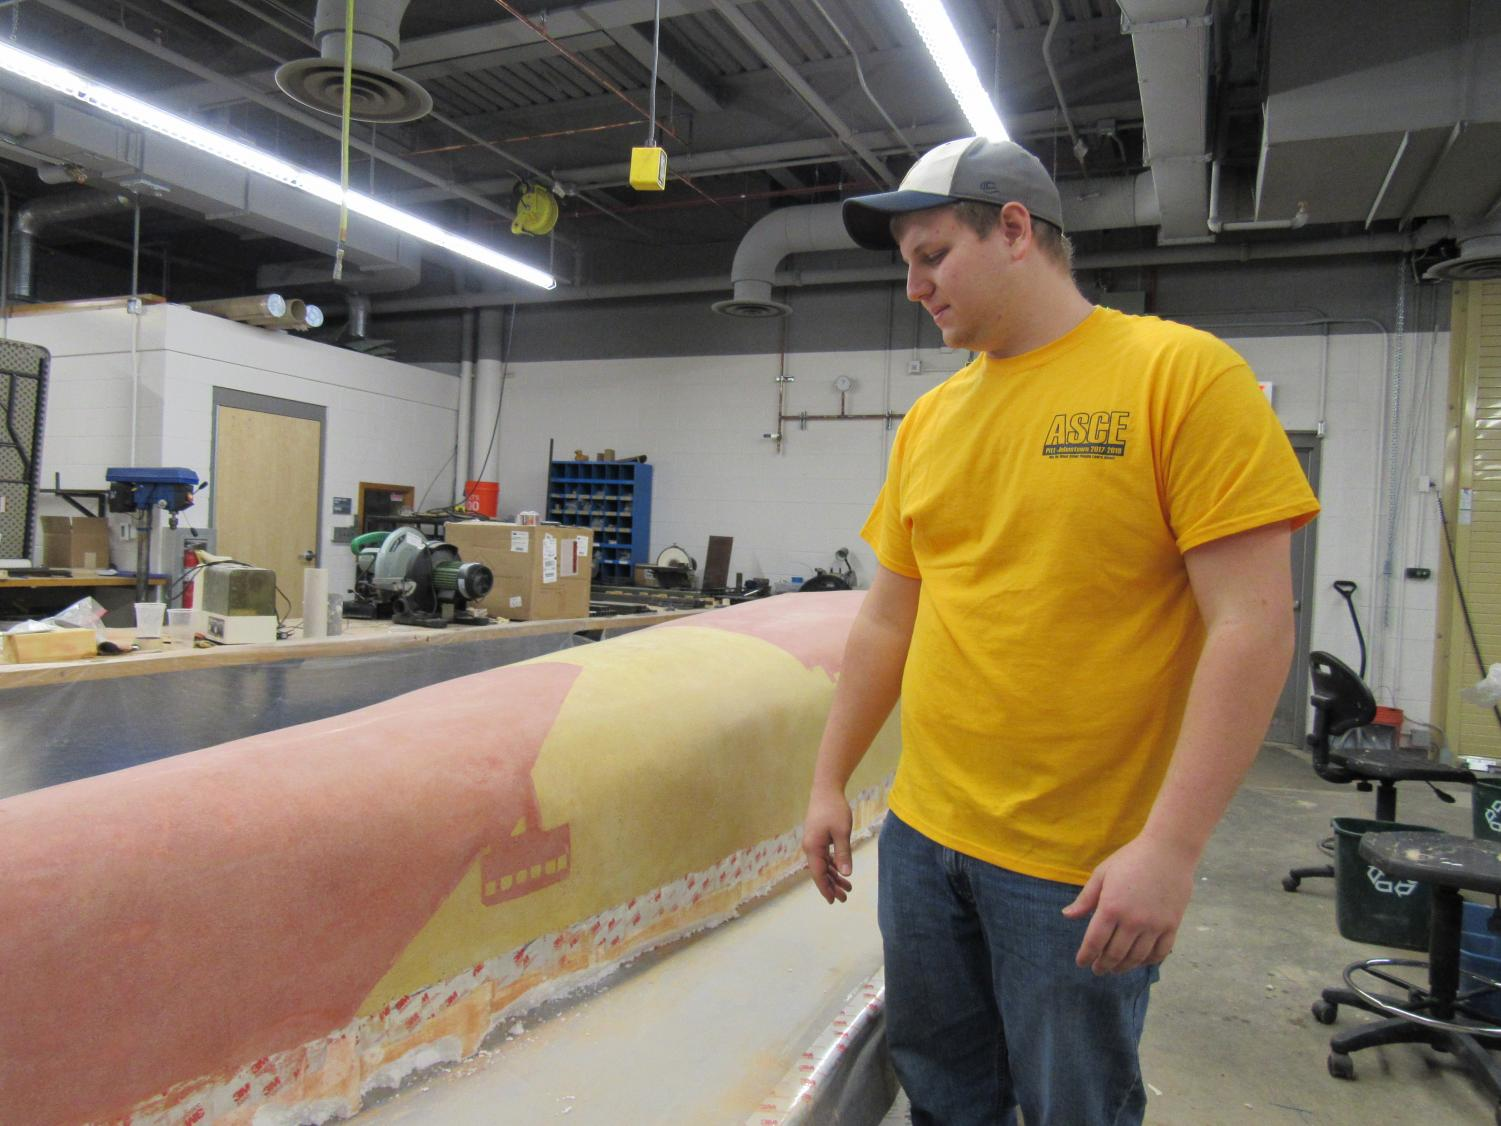 Concrete Canoe captain Justin Towsey shows off canoe progress as of early March.